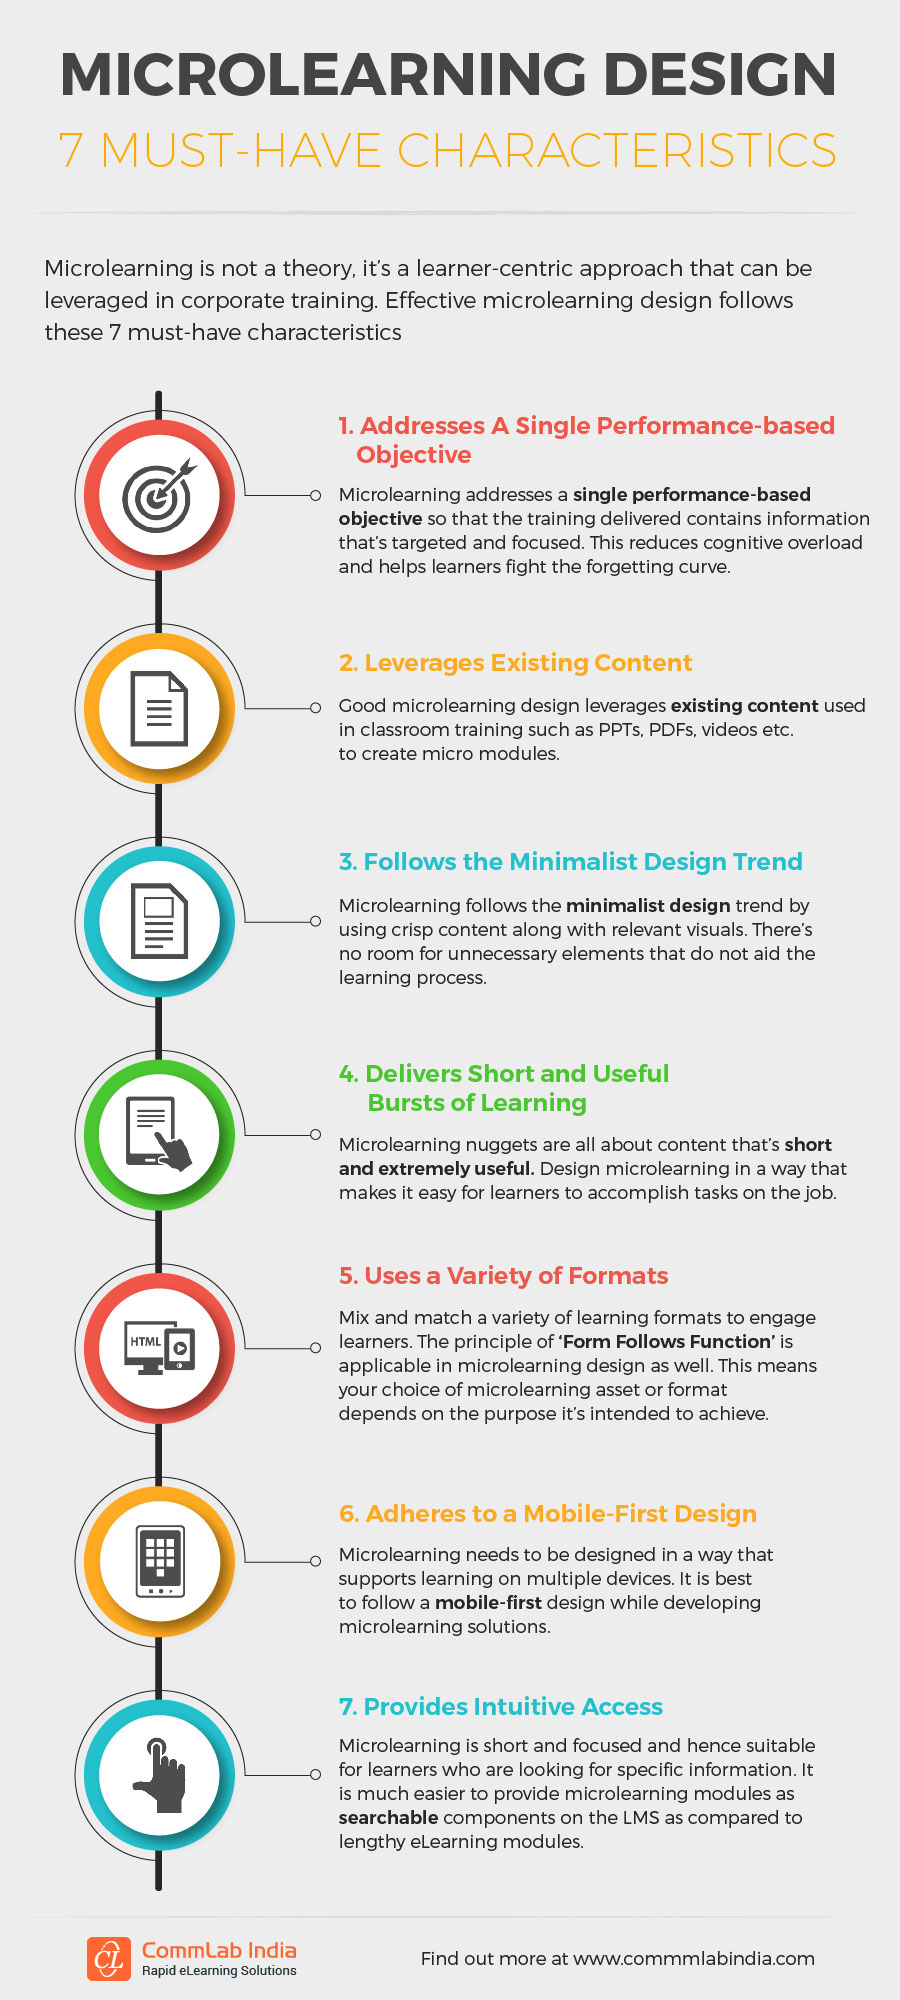 7 Must-Have Characteristics of Microlearning Design [Infographic]